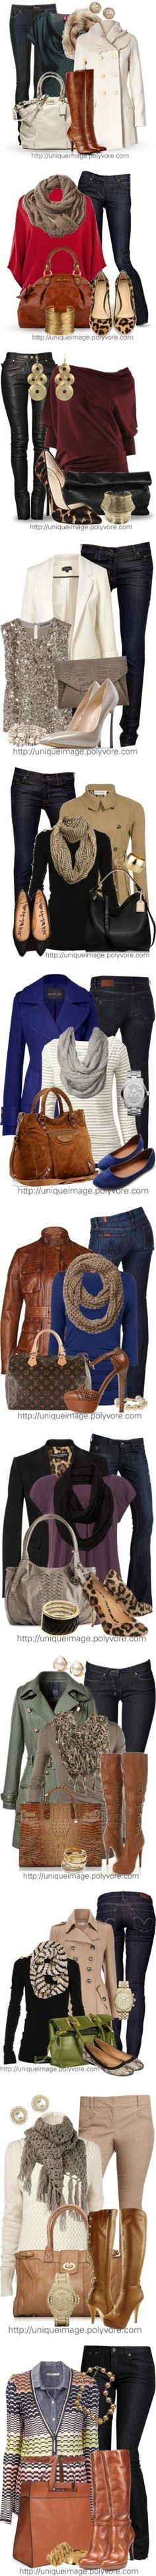 Fall/Winter Outfit Ideas. Lots of fab ideas here.